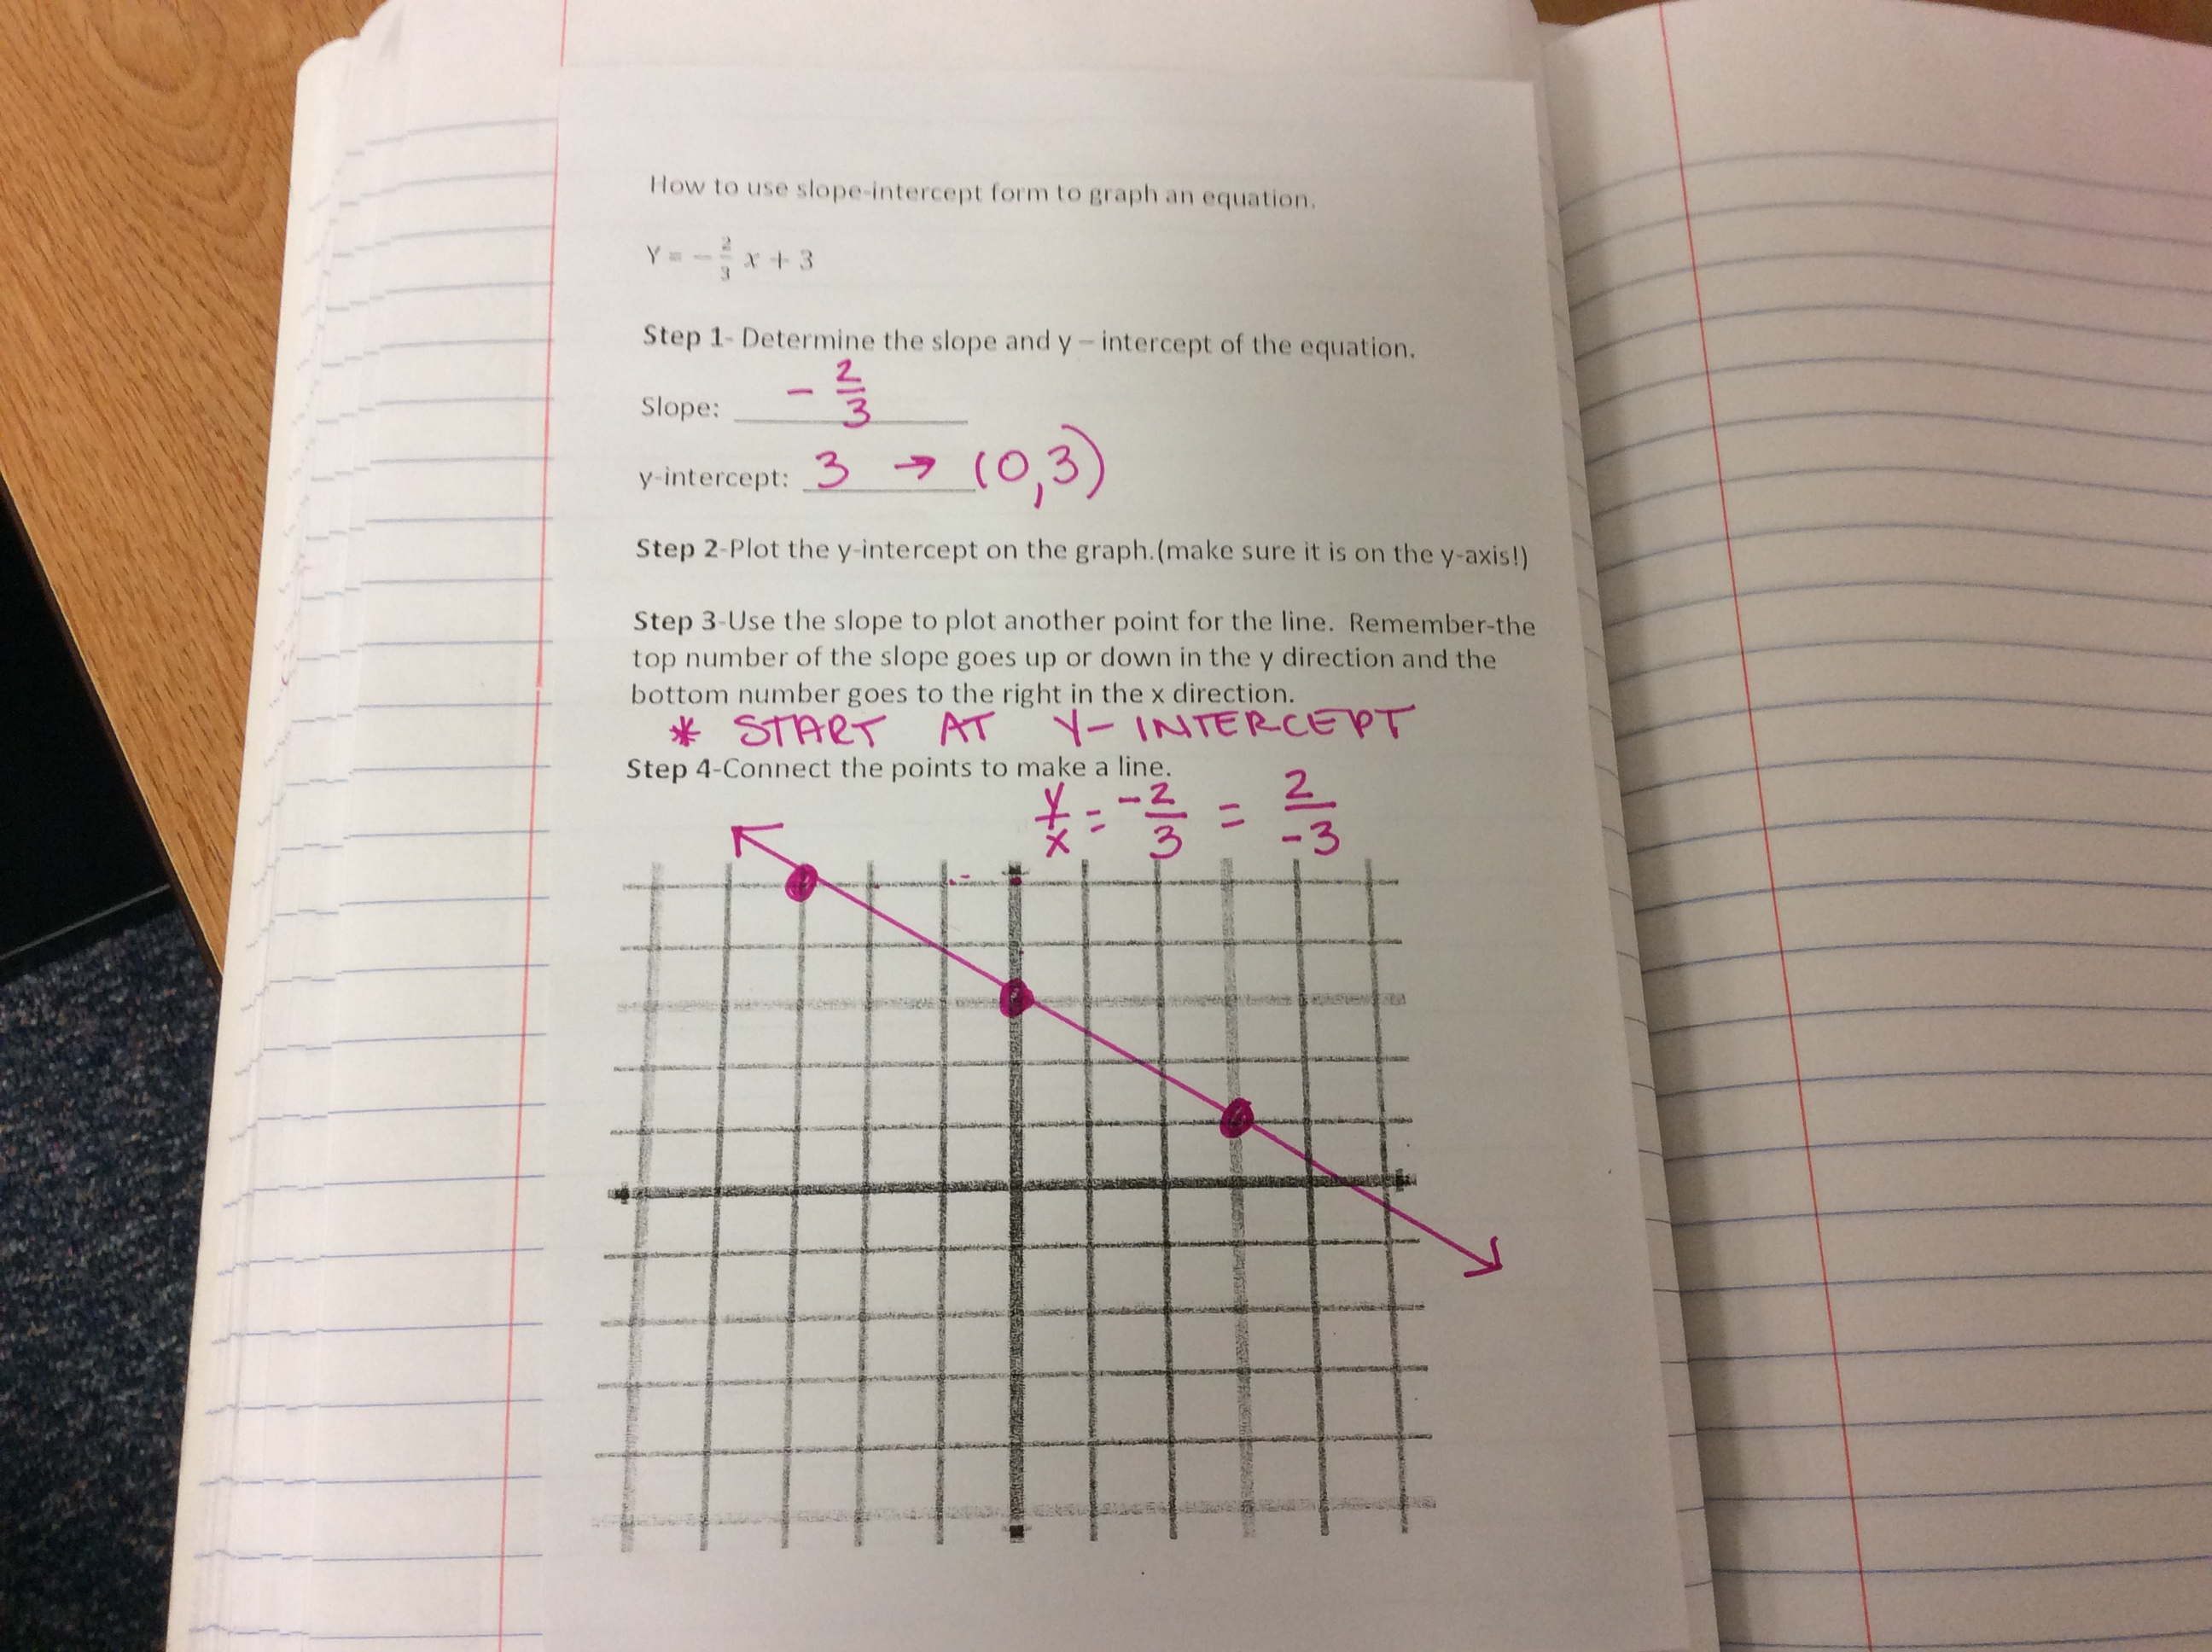 Winterc math 8 notes how to use slope intercept form to graph an equation falaconquin